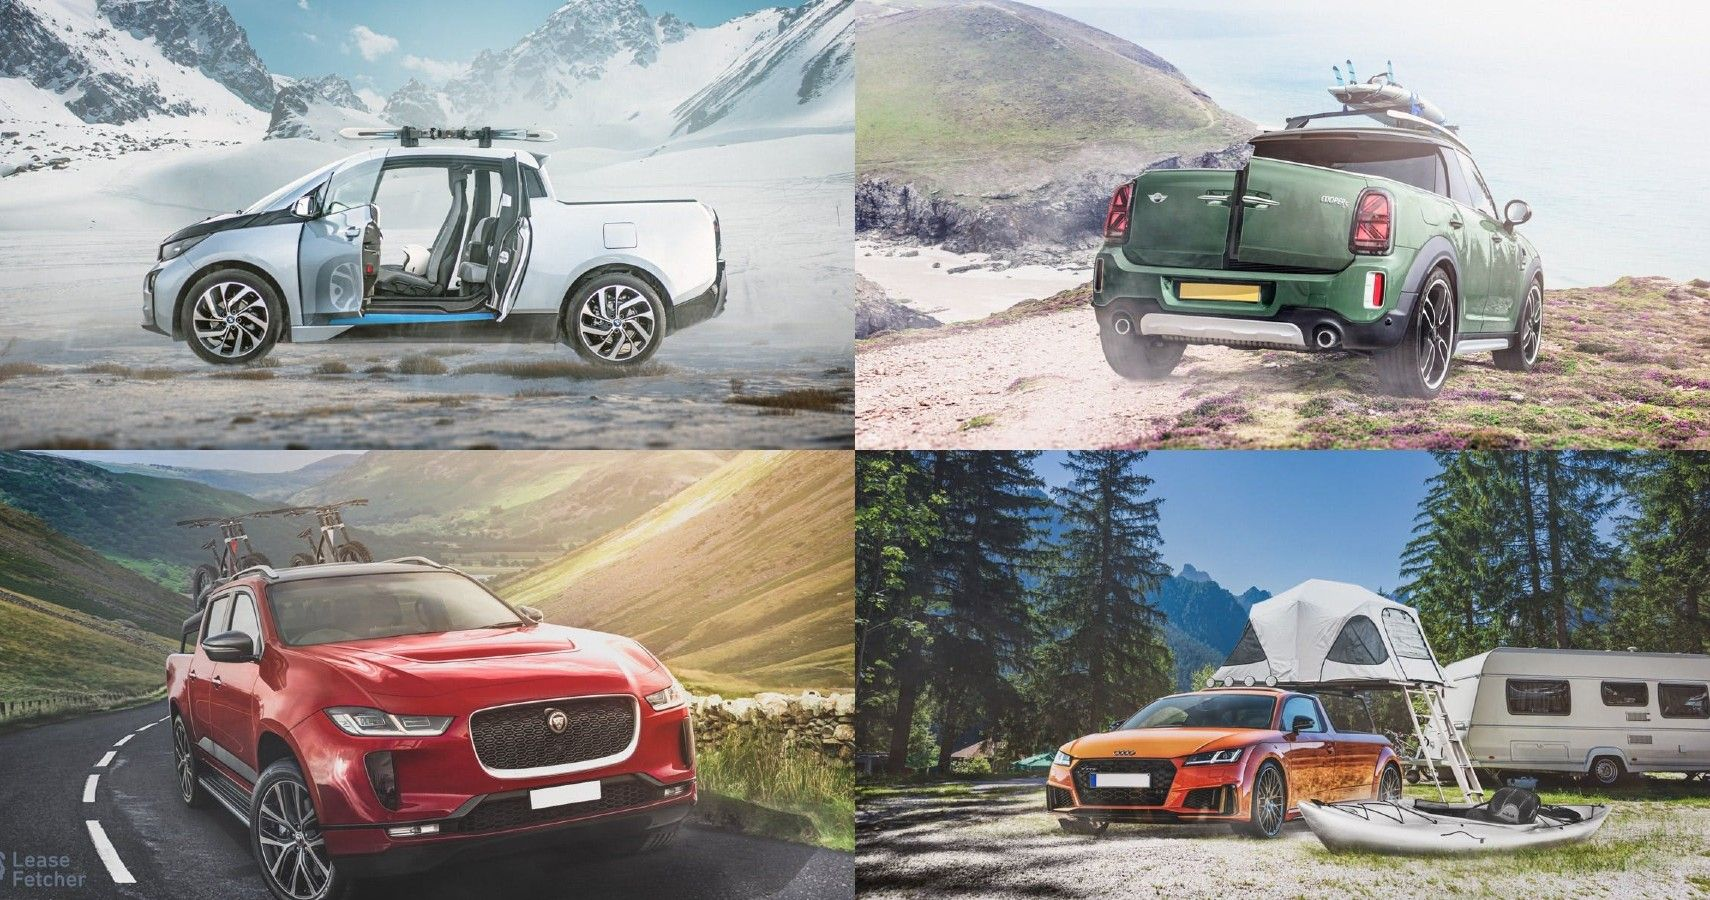 Check Out These Renderings Of Popular Cars Reimagined As Pickup Trucks